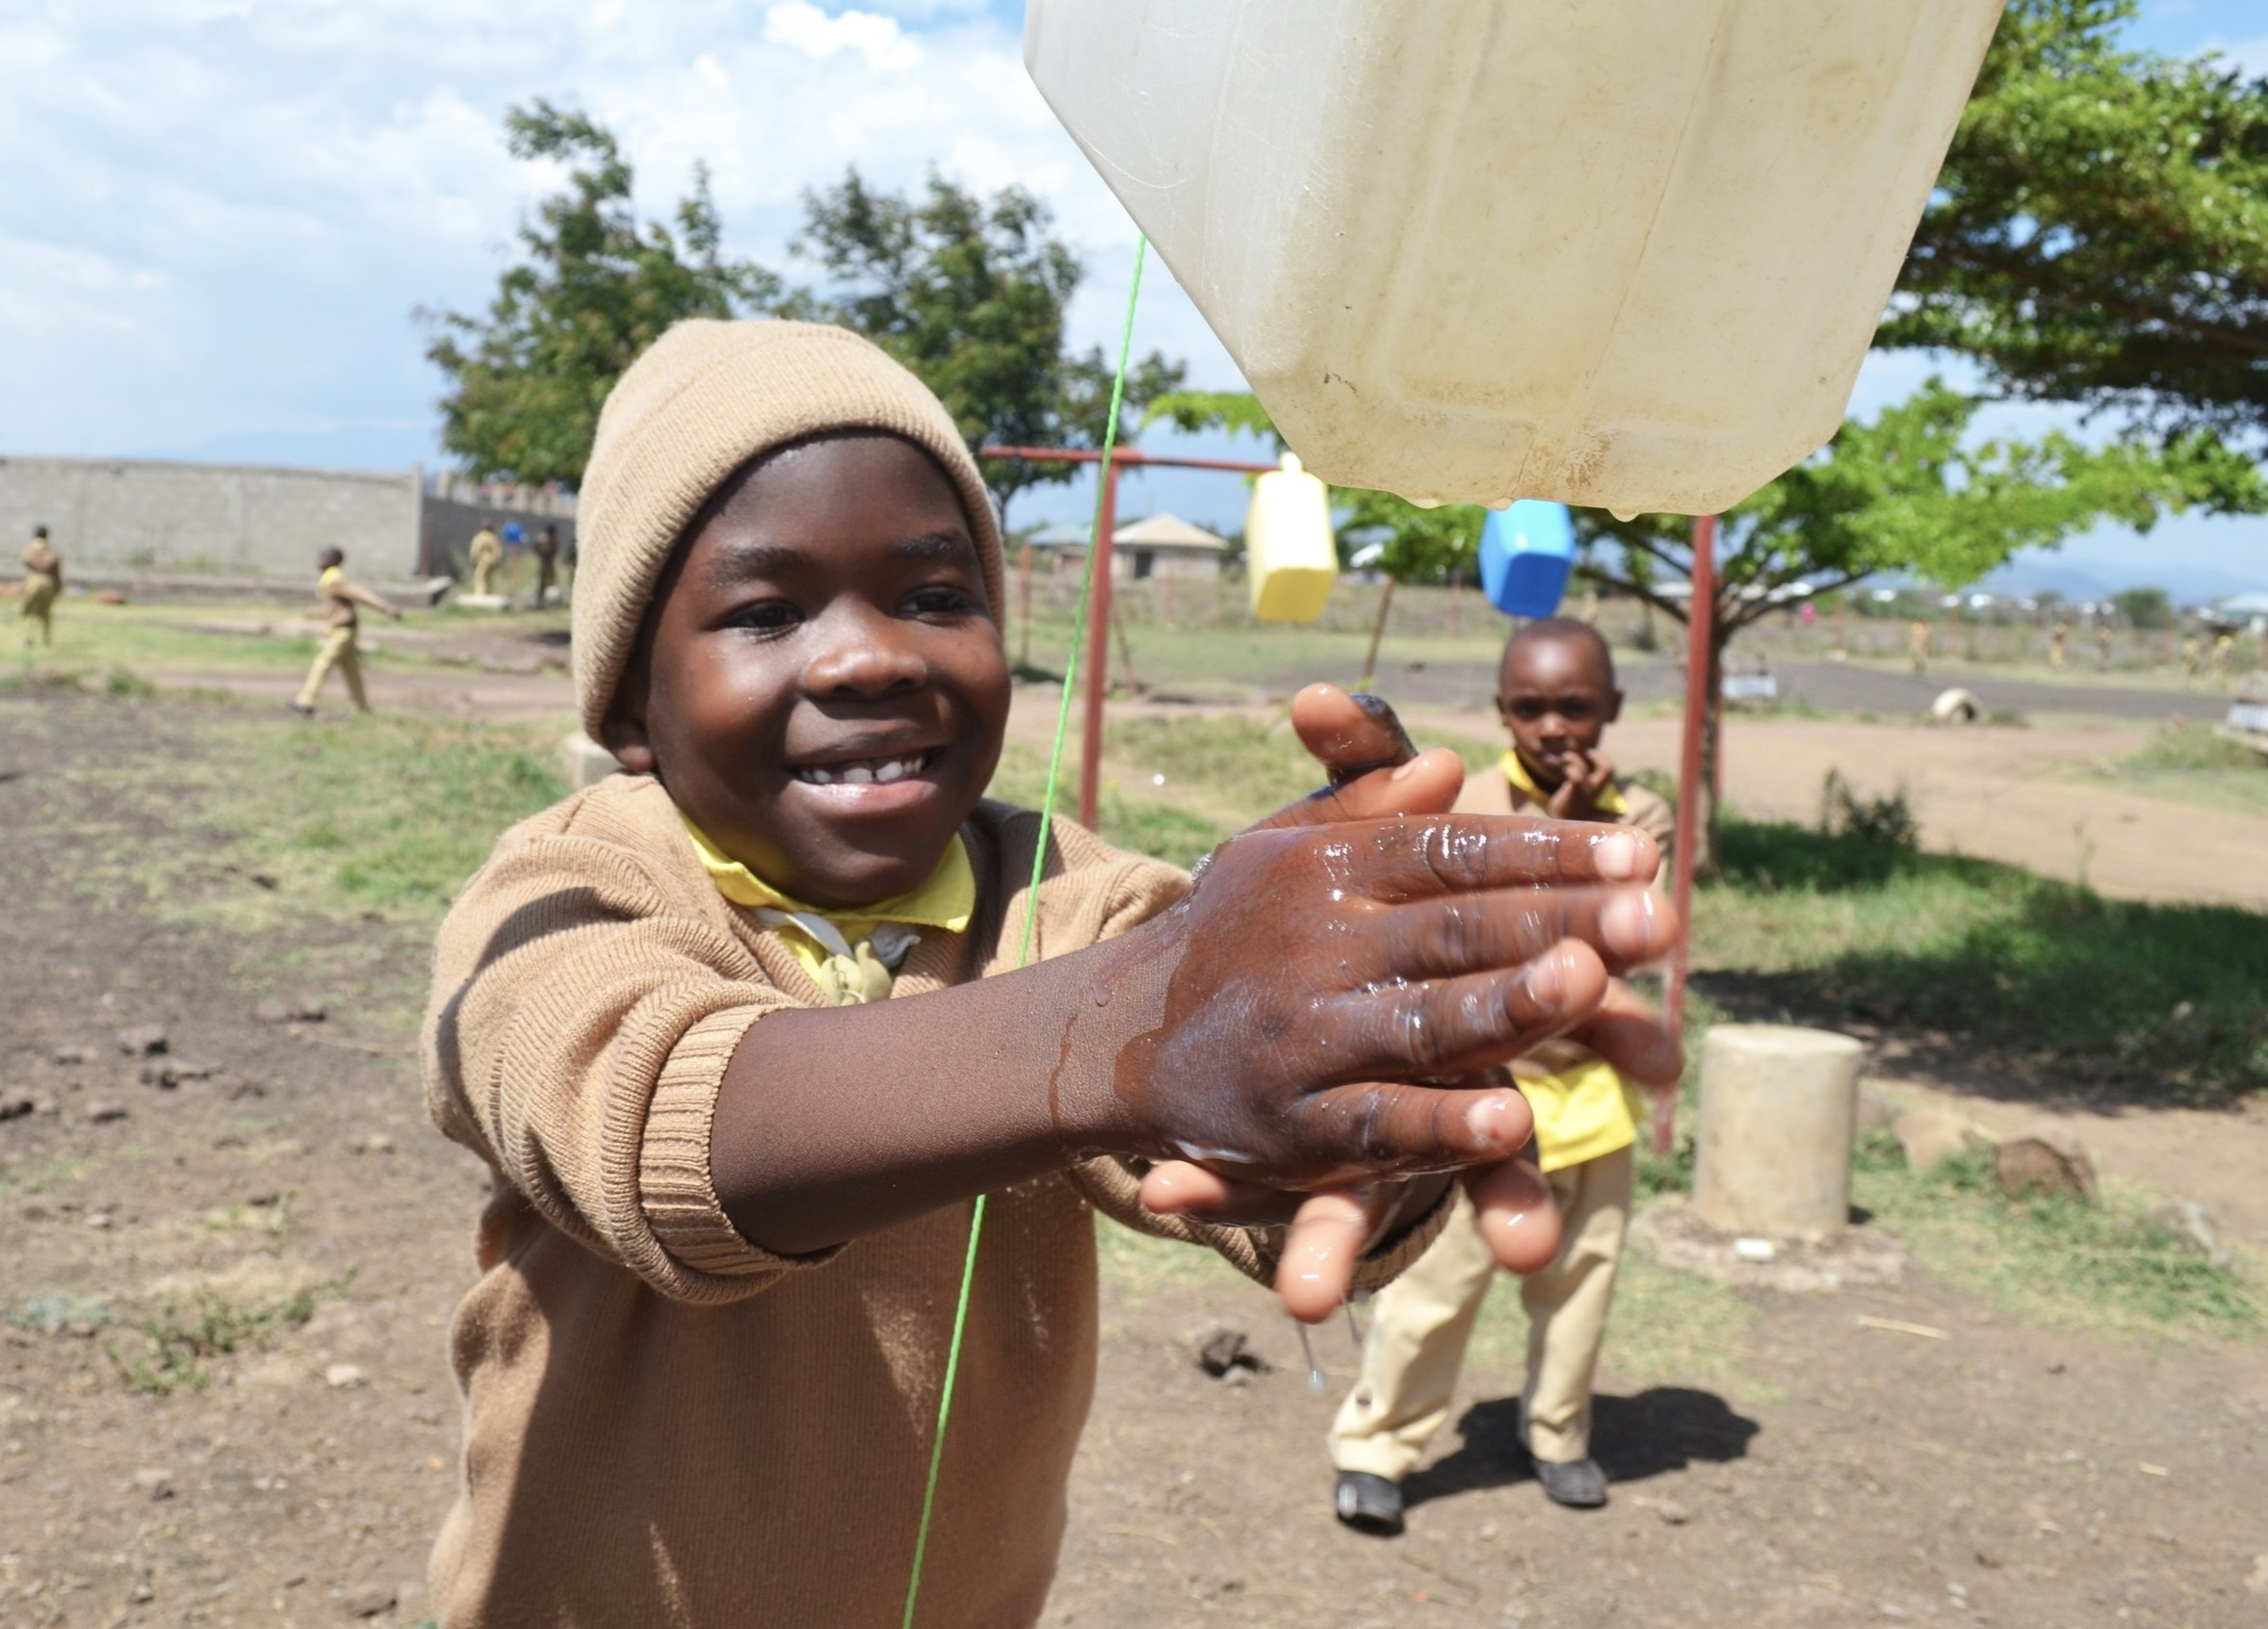 OUR IMPACT - So far we have built 14 toilets, 12 hand washing stations and student hand washing workshops.